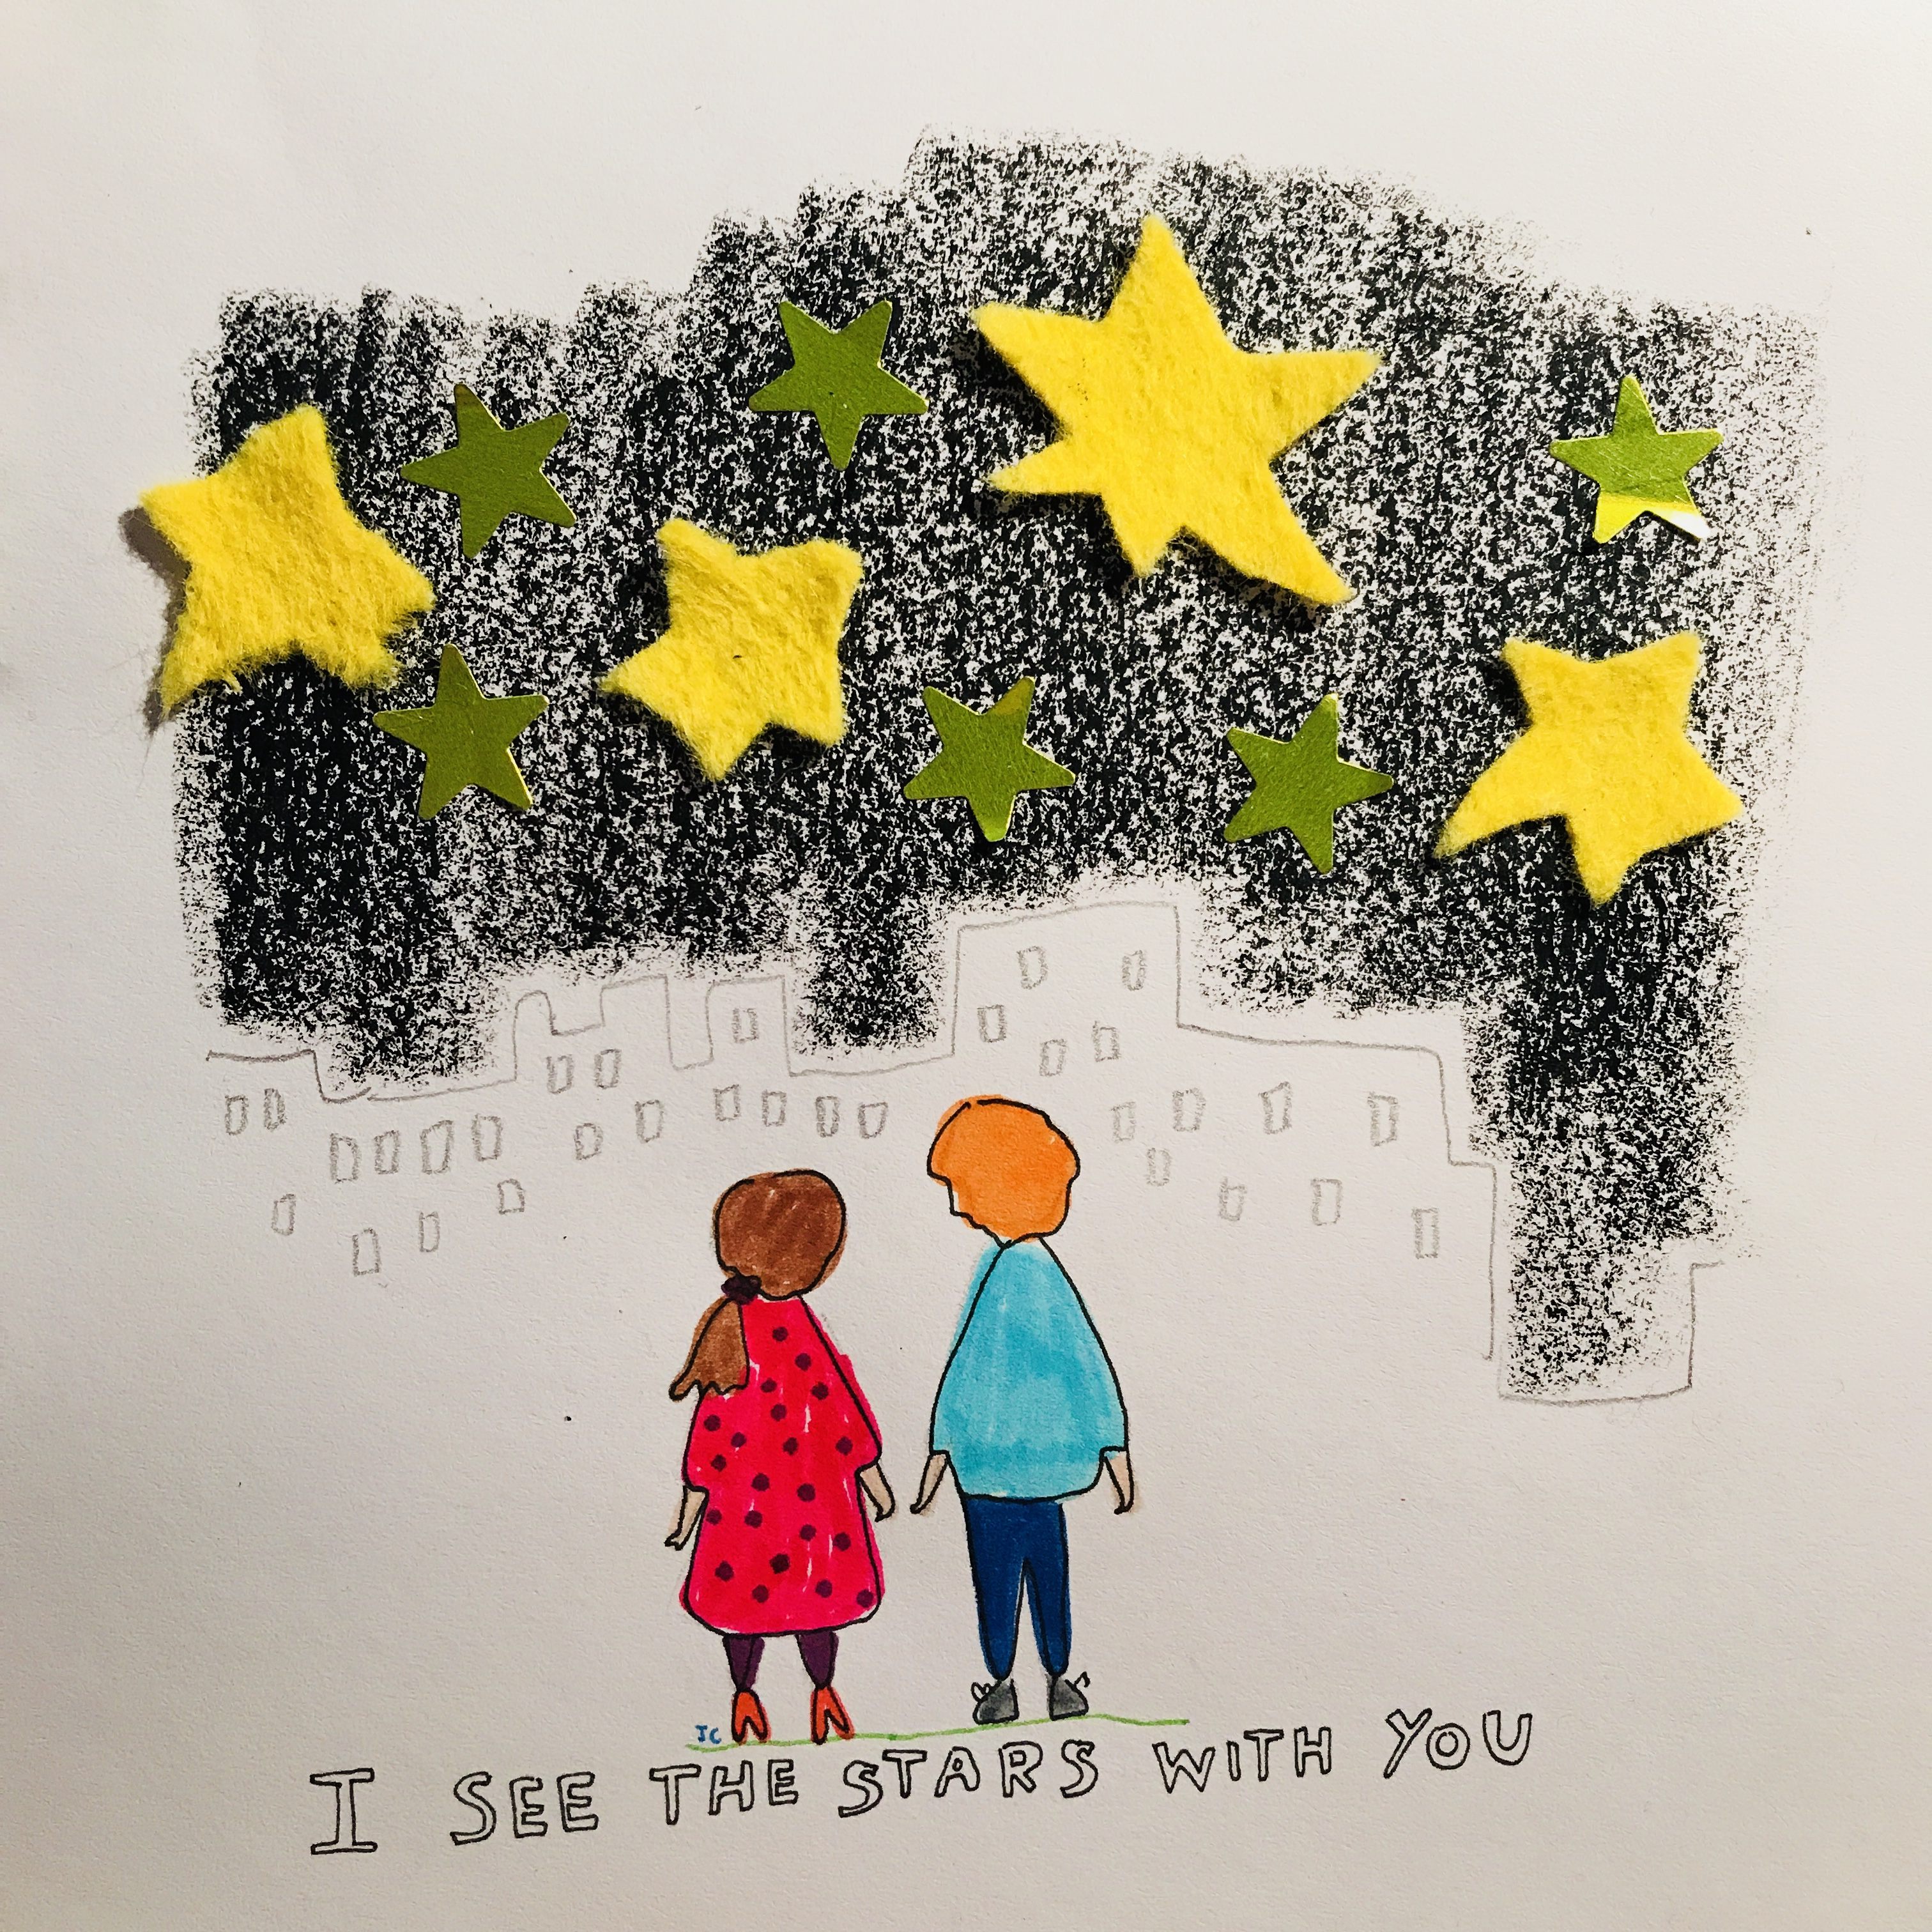 I see the stars with you - Jessie Cave